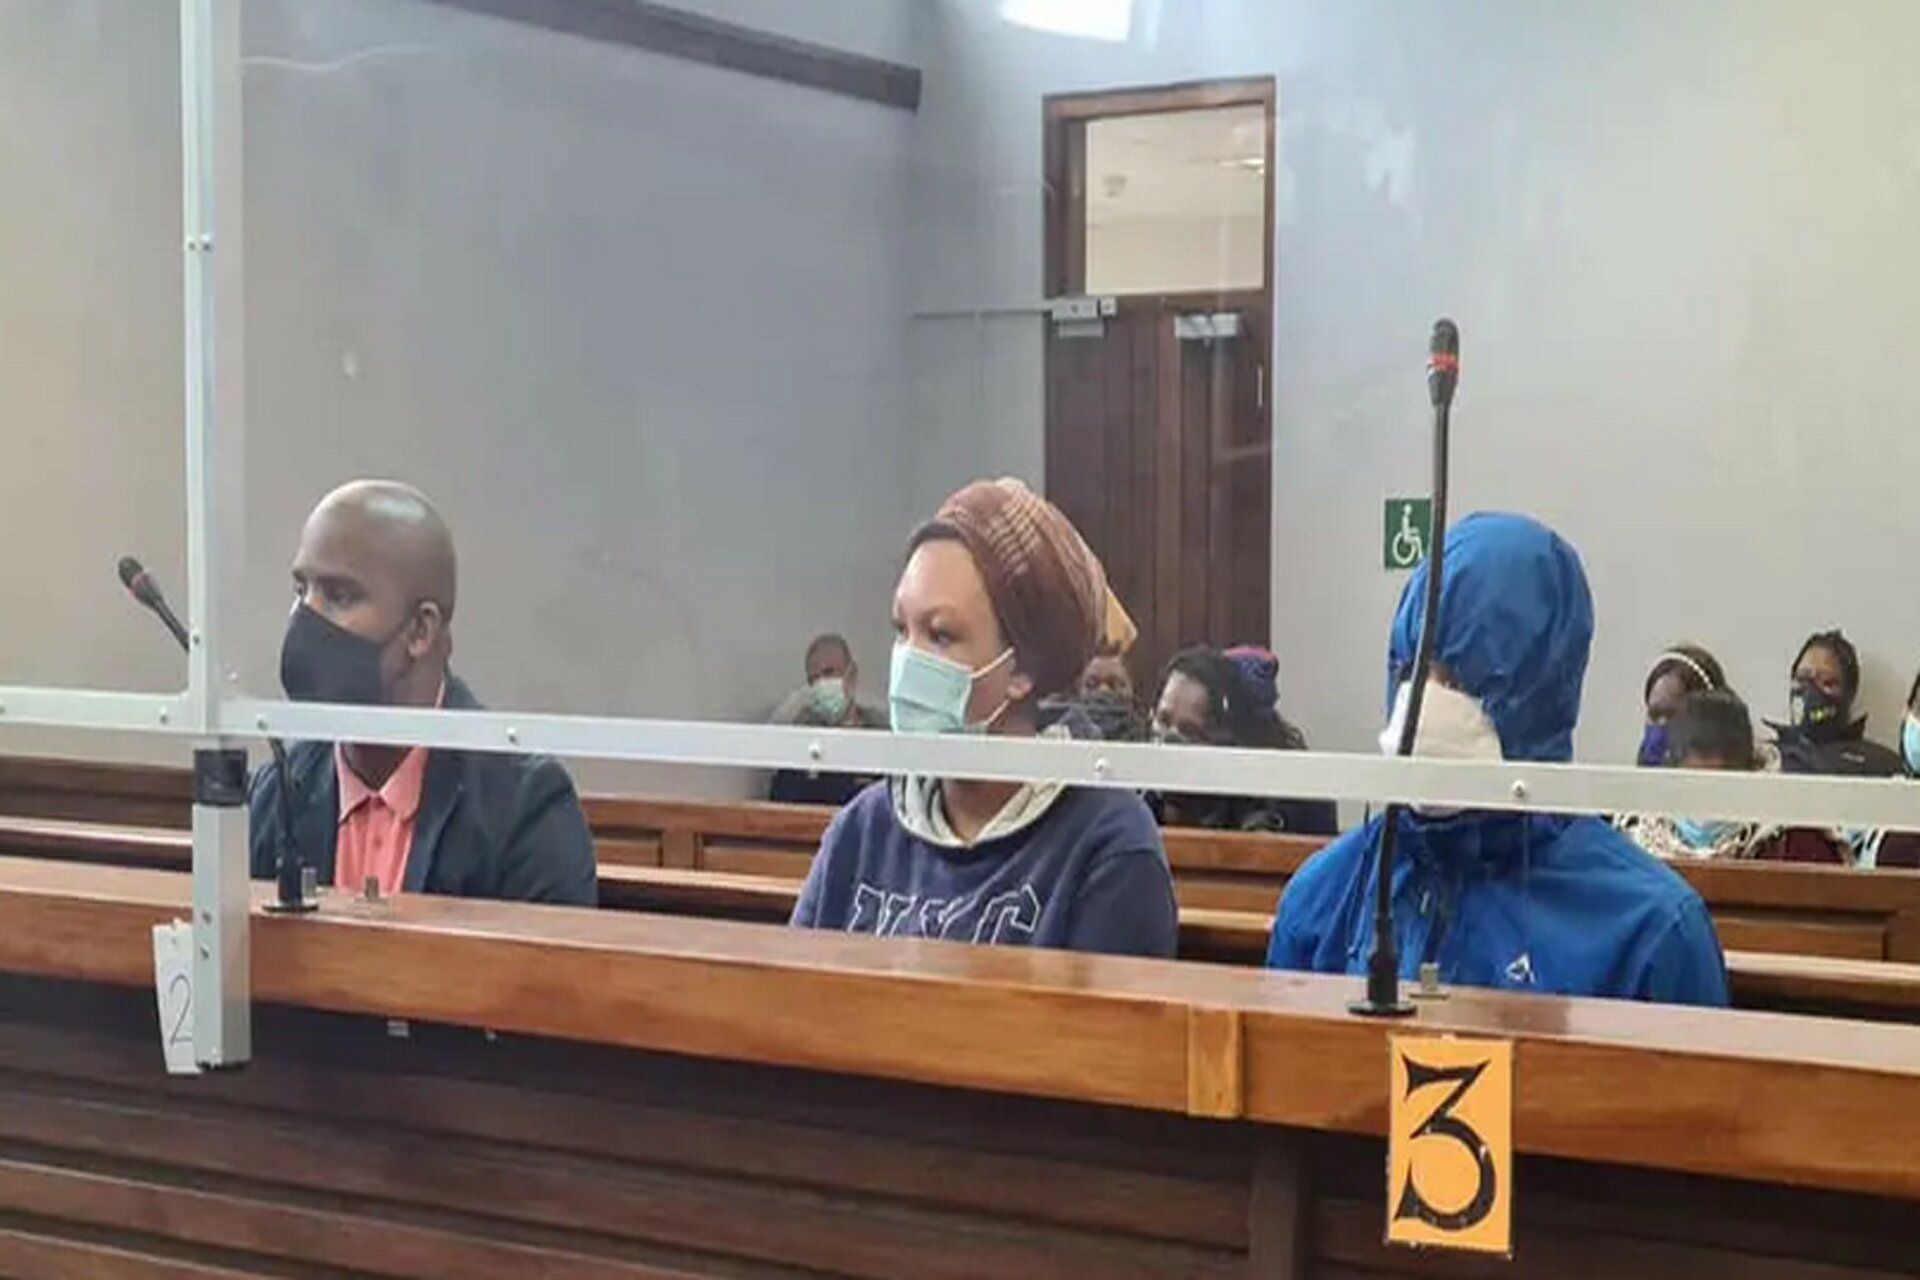 South-African-Pastor-Wife-and-Cousin-All-Found-Guilty-Over-The-Murder-Of-A-Woman.jpg